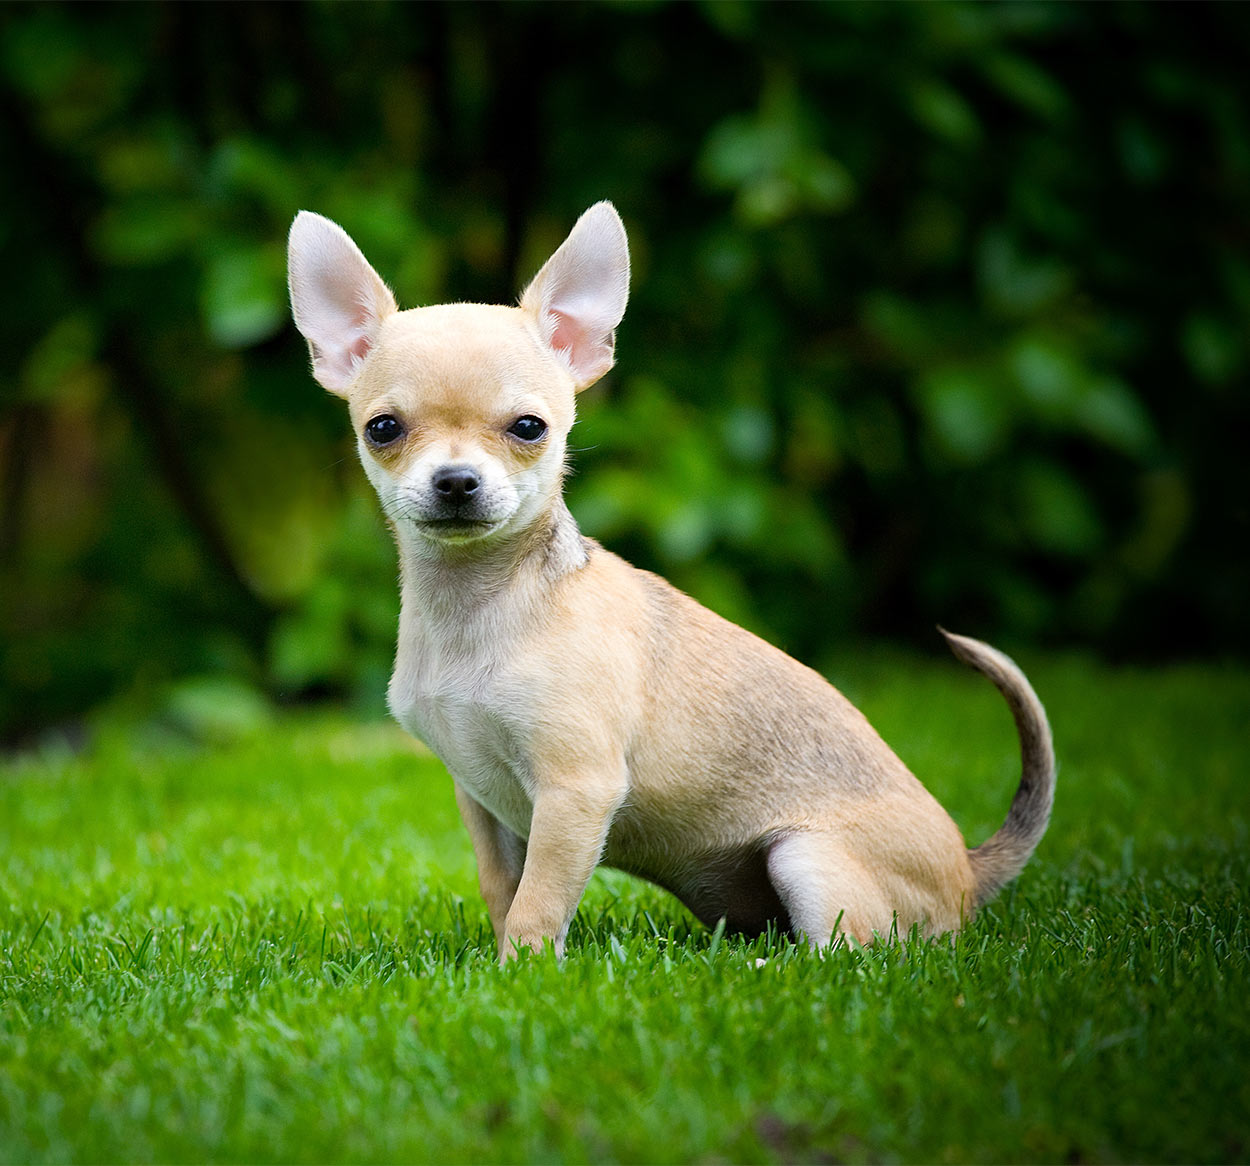 The Smallest Dog In The World - A Giant Guide To Tiny Breeds